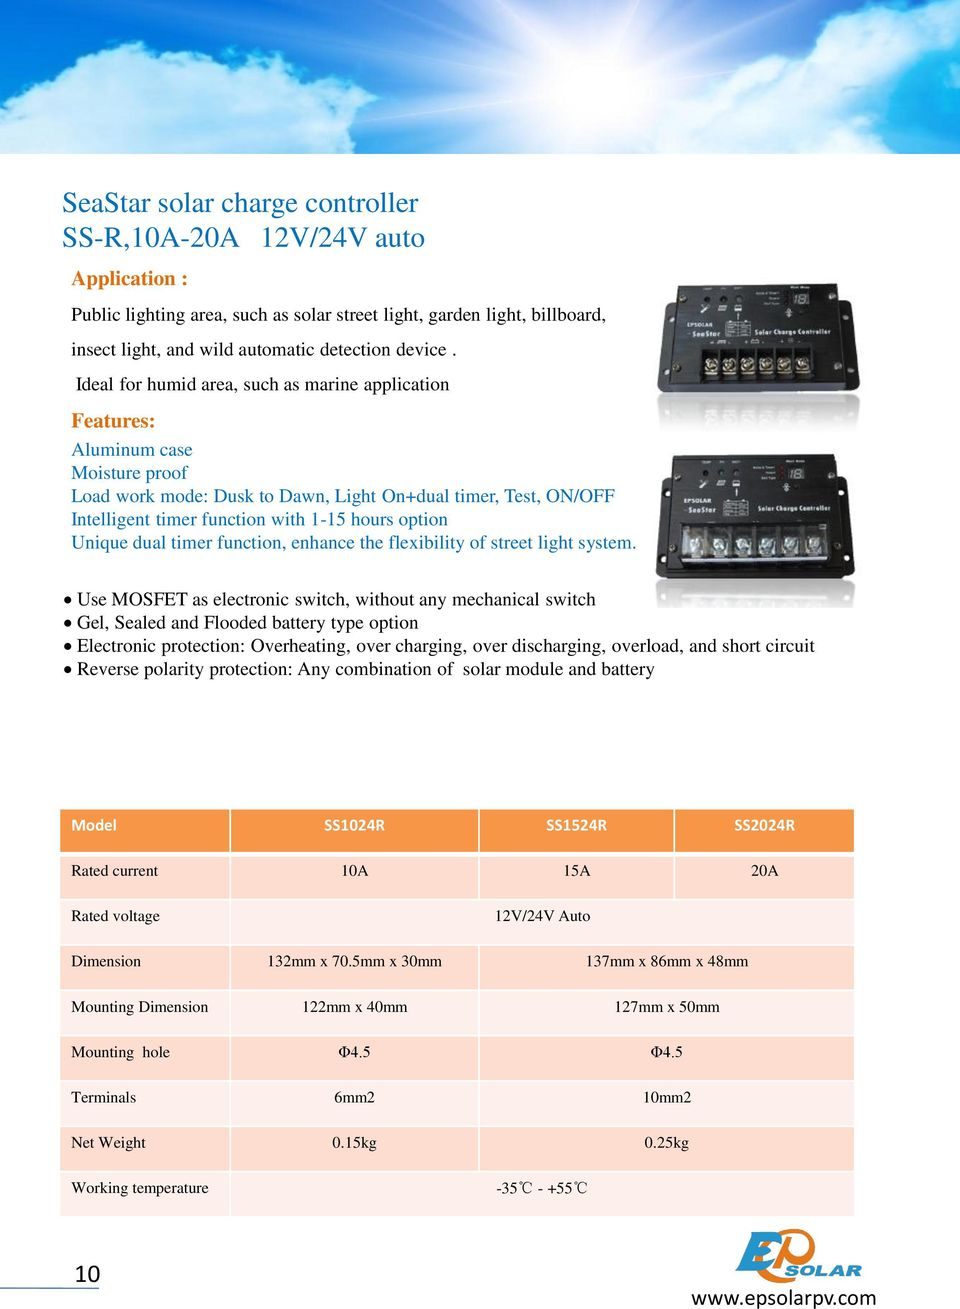 dual timer function, enhance the flexibility of street light system.